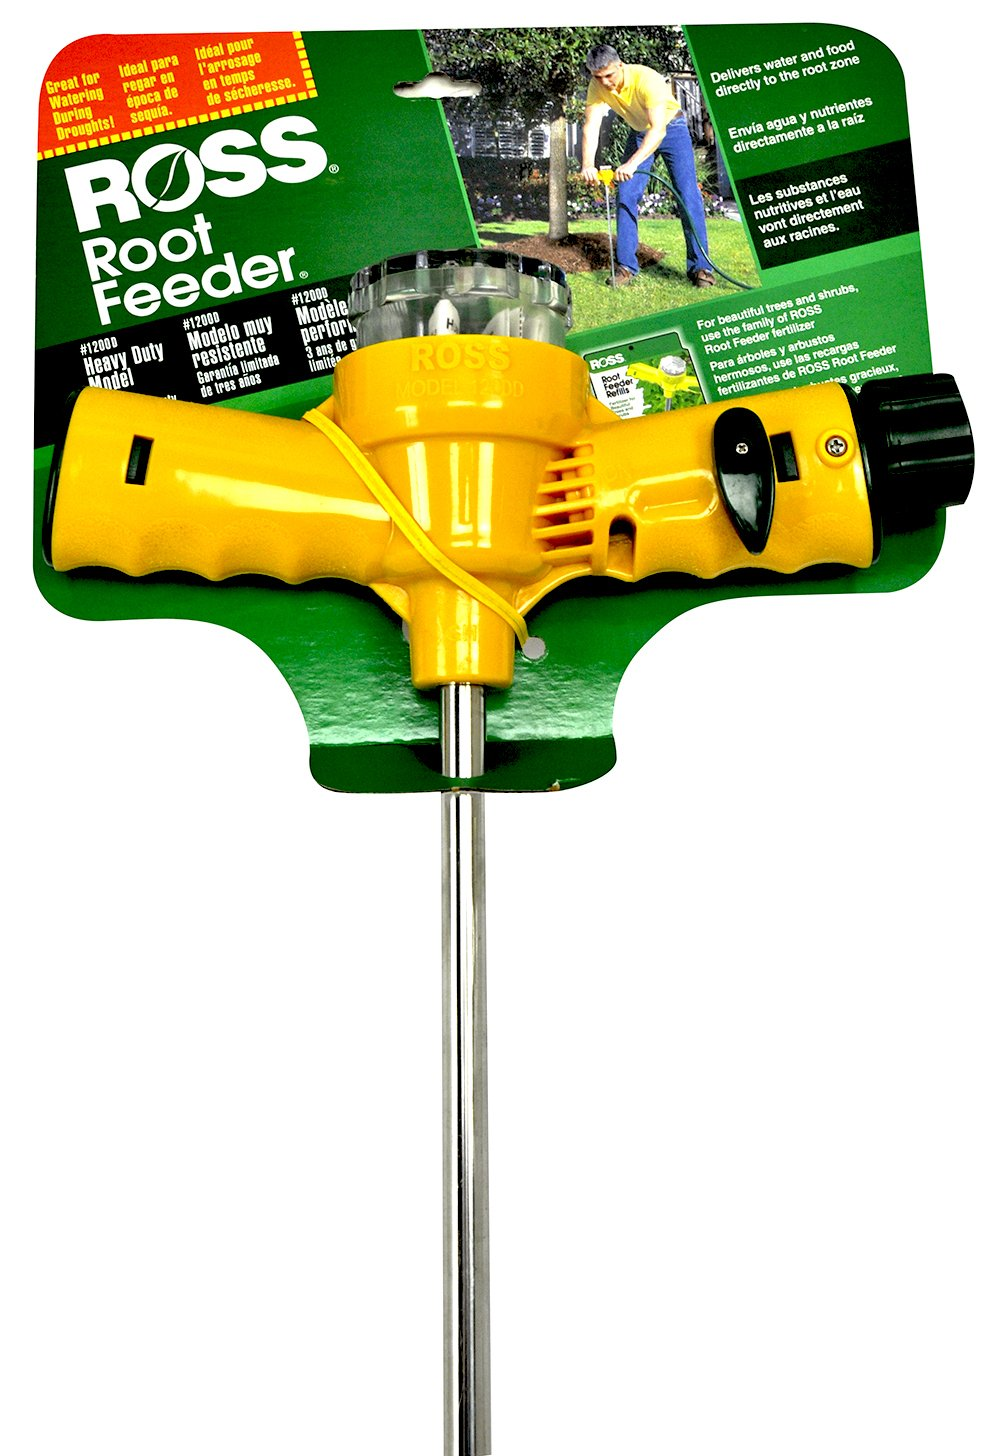 Ross Root Feeder Heavy Duty Model #1200D, For Use Fertilizer Refills (Ideal for Watering During Droughts), 3 Year Limited Warranty